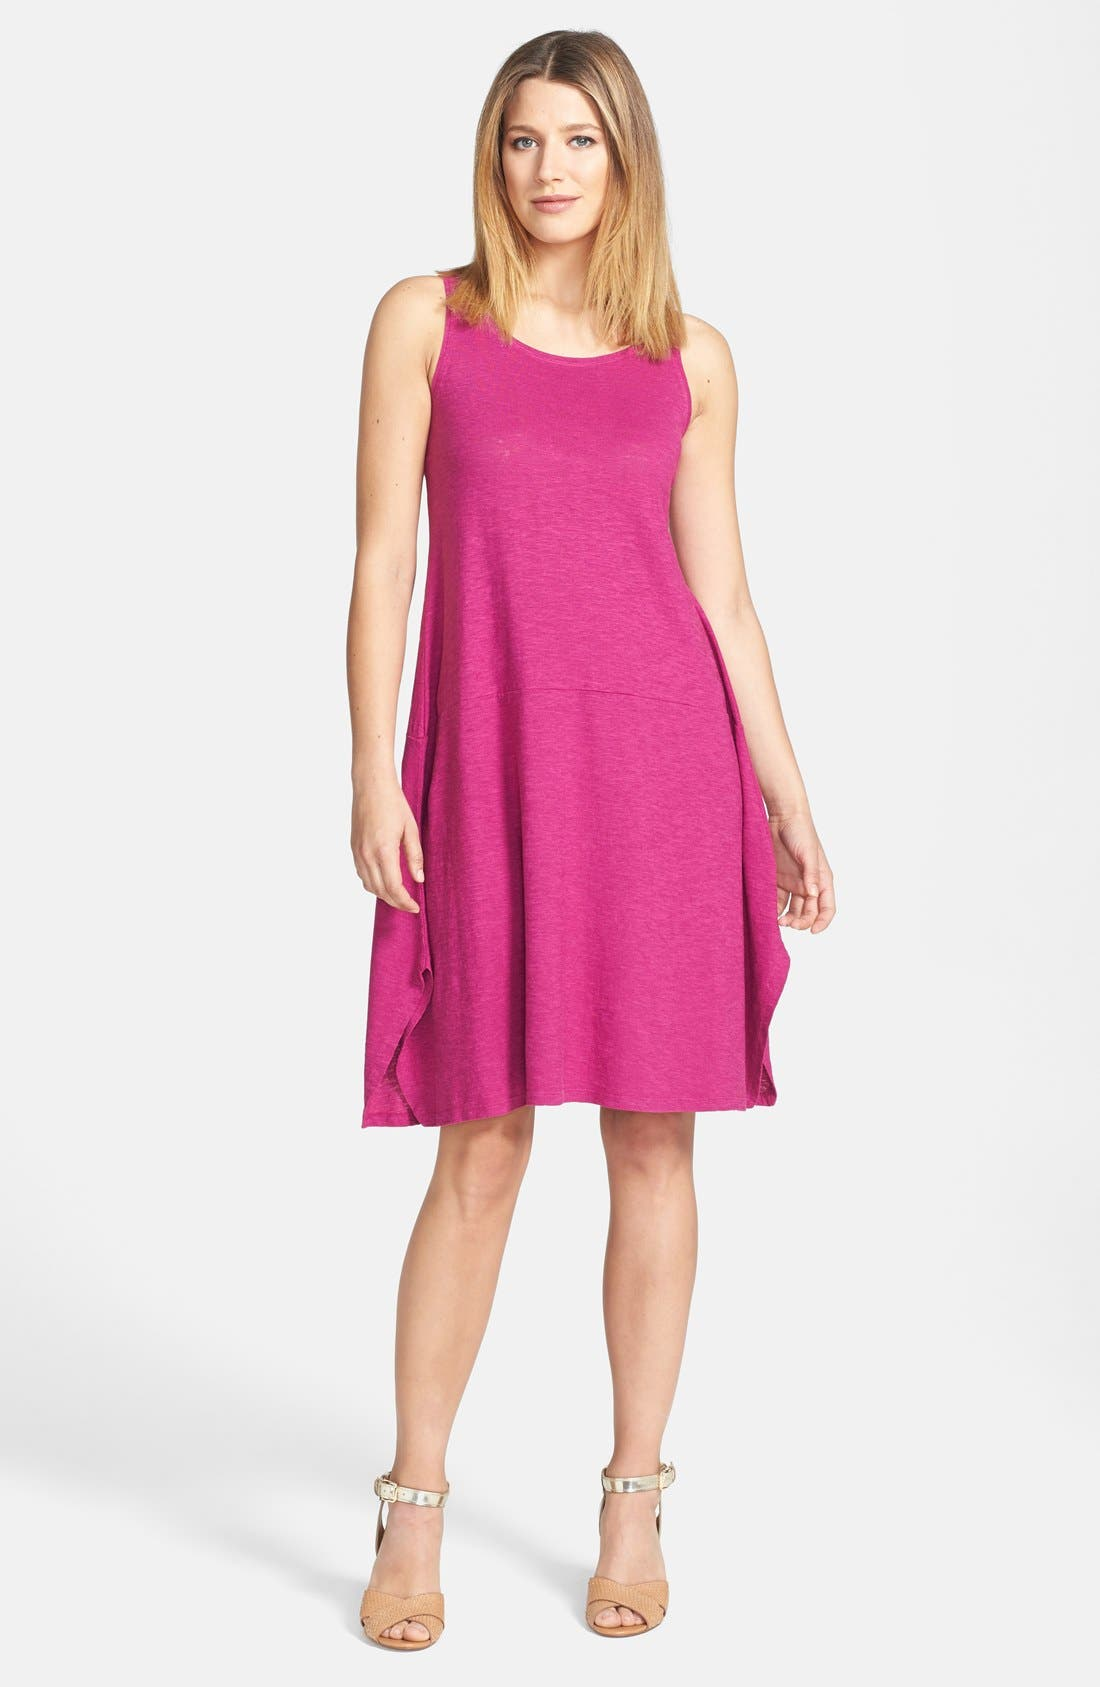 Main Image - Eileen Fisher Scoop Neck Hemp & Organic Cotton Knit Dress (Petite)